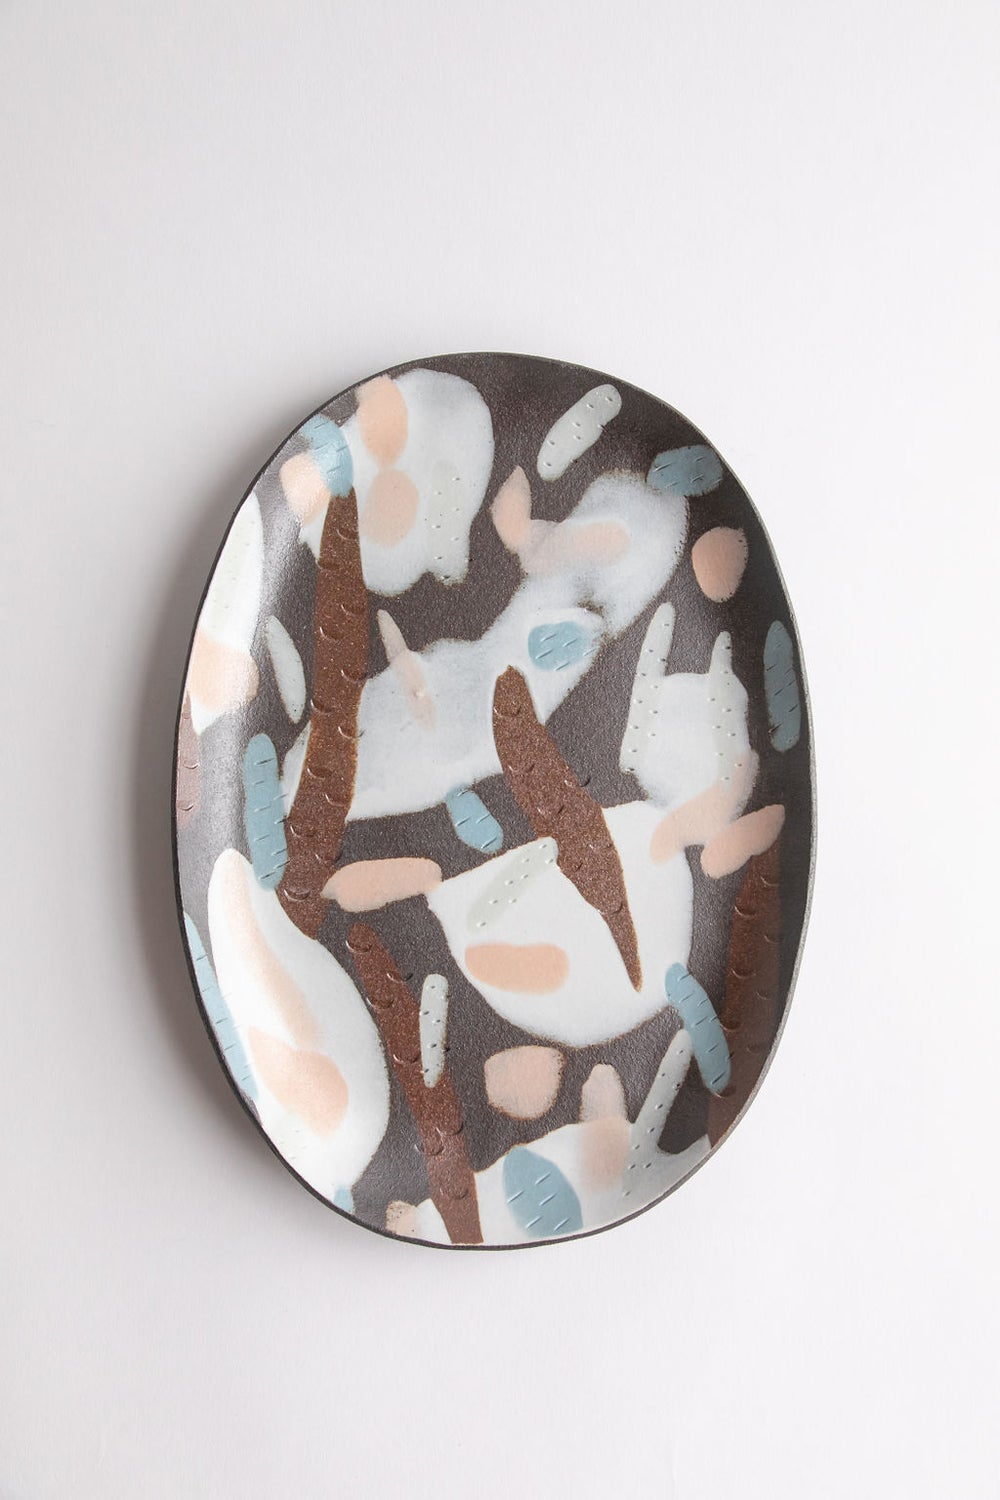 Image of X-Large Porcelain Inlay Serving Platter - Dark Brown w/ pastel pink, blue and green